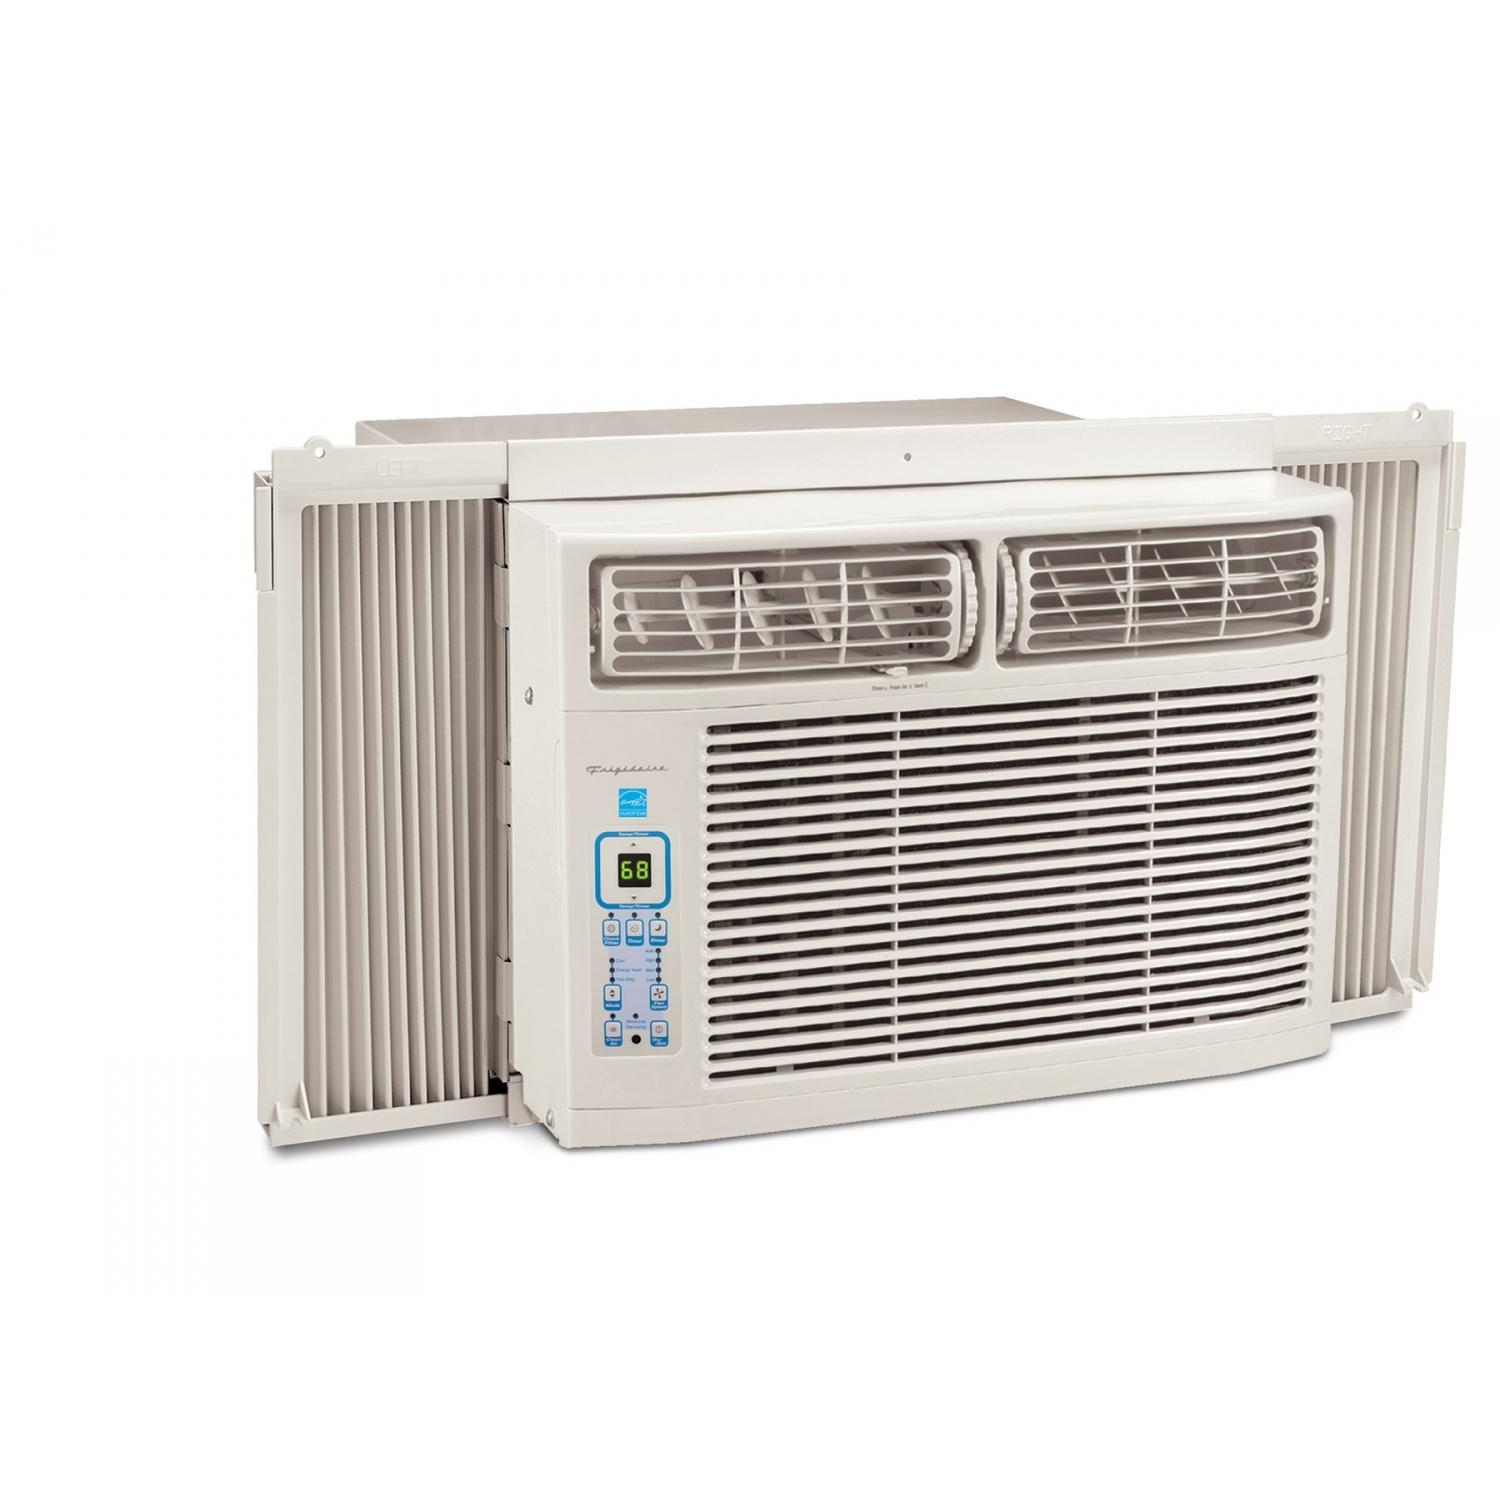 FAC106P1A Frigidaire fac106p1a Window/Wall Air Conditioners #2C799F